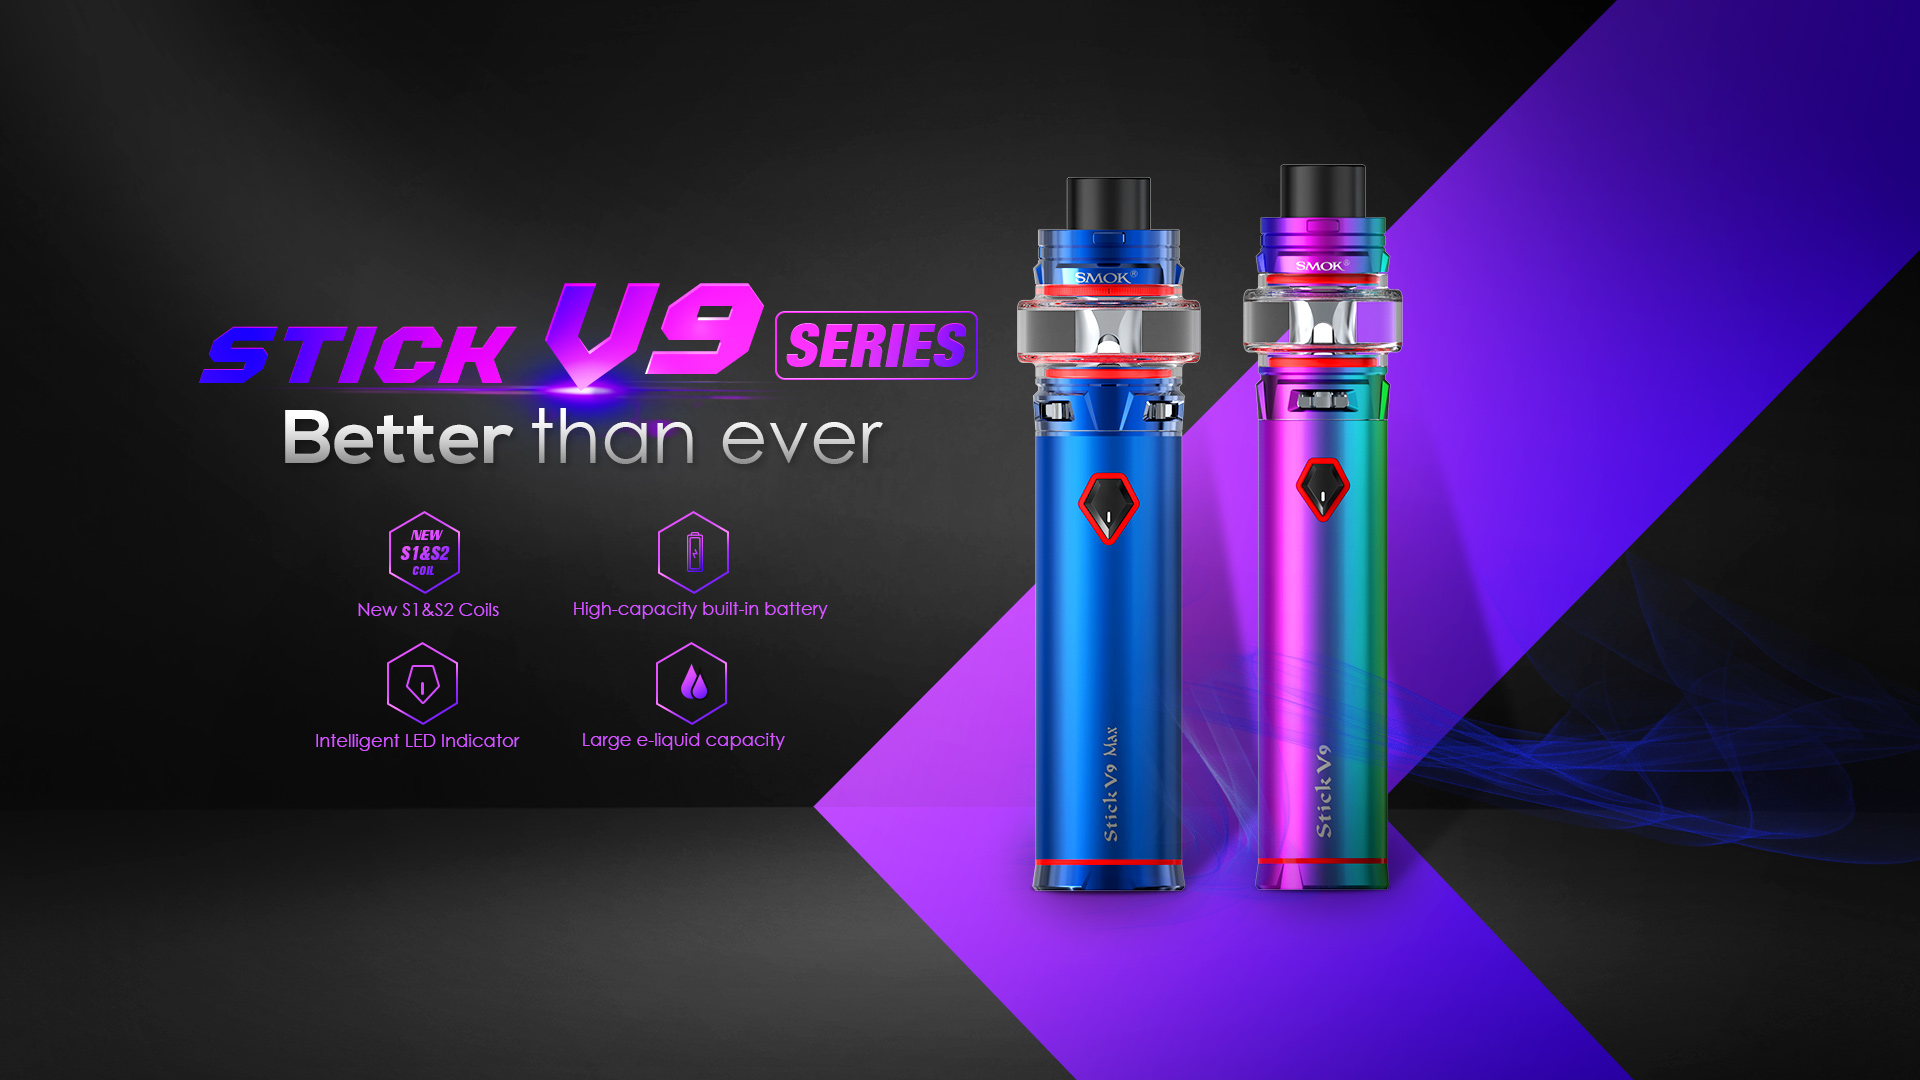 Stick V9 Stick V9 Max Vape Pen Smok Official Site